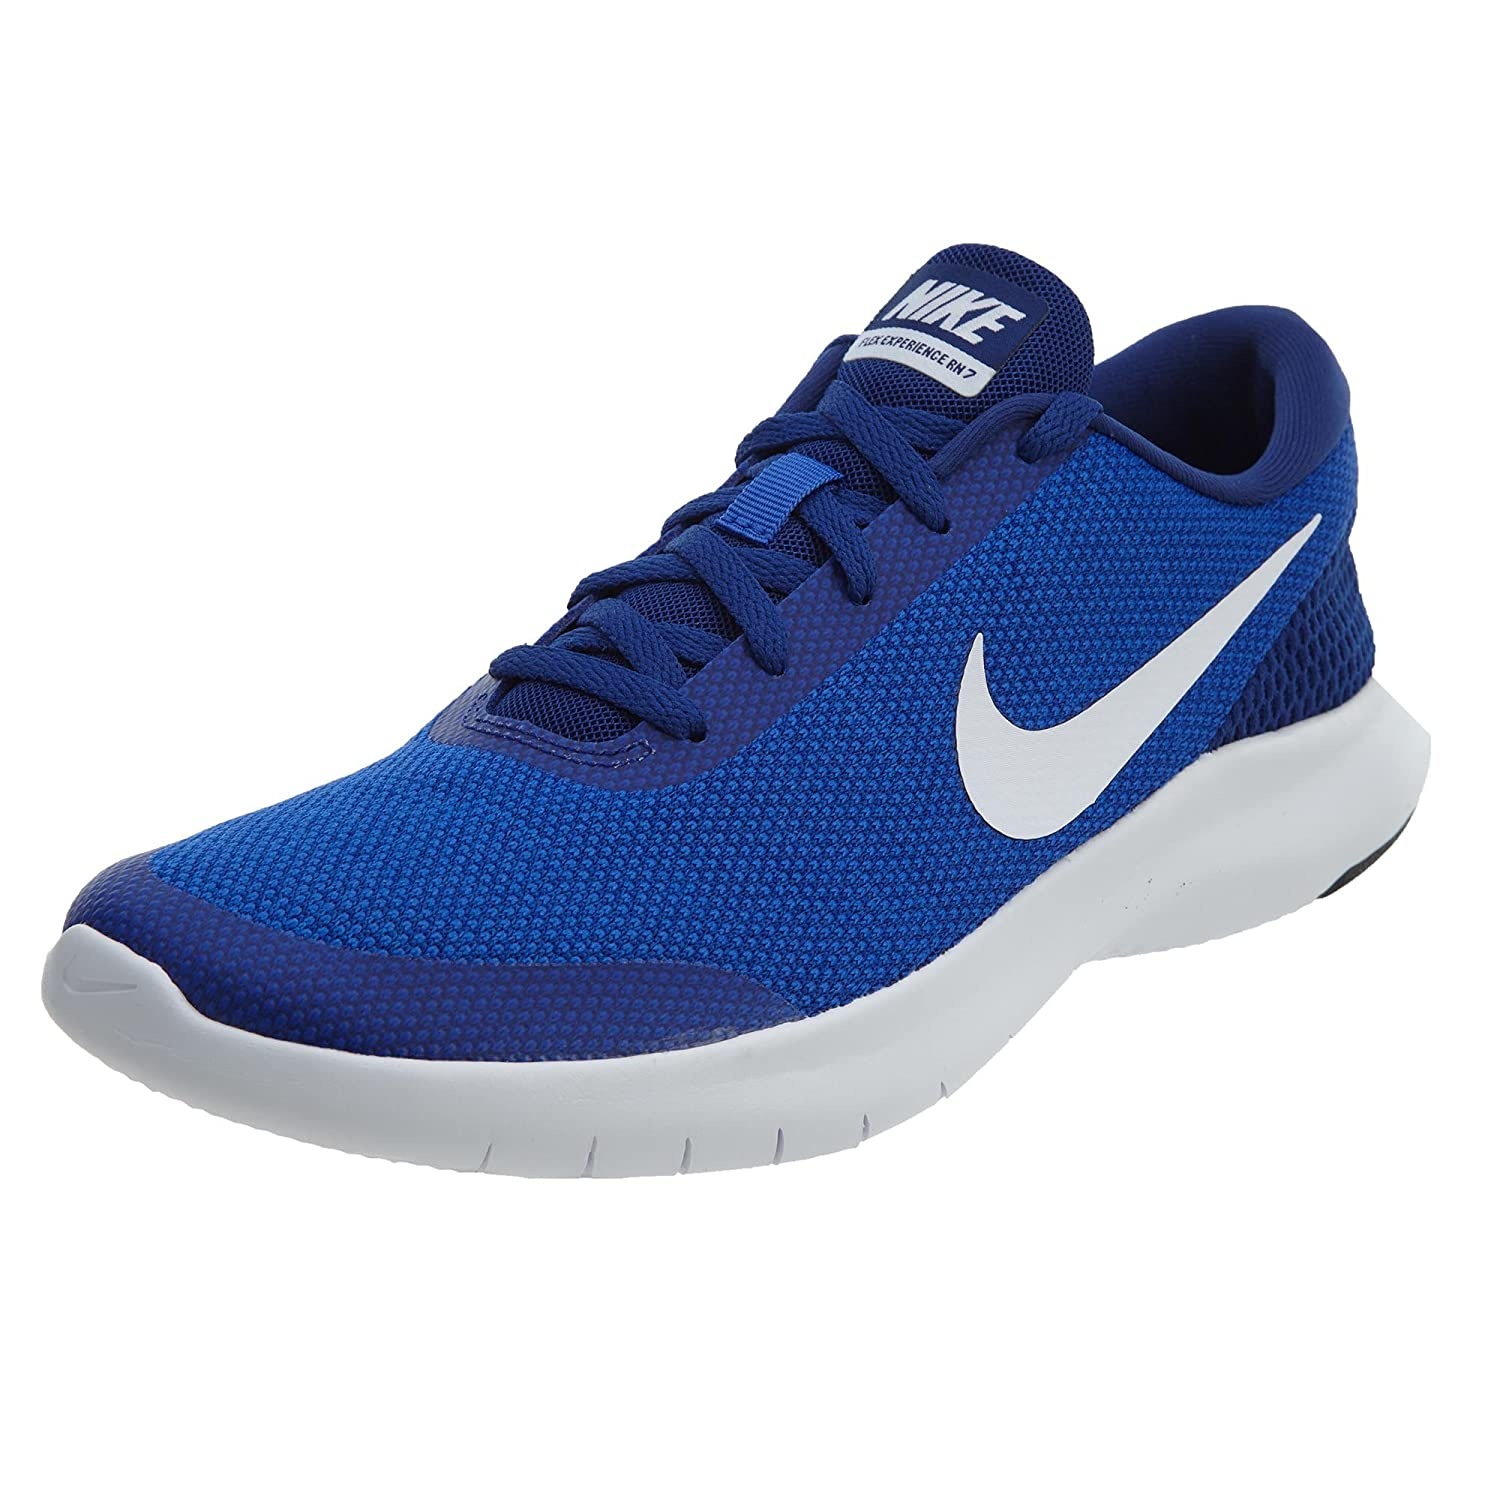 aabb3b348b02 Nike Men s Flex Experience RN 7 Royal Blue White Running Shoes  (908985-401)  Buy Online at Low Prices in India - Amazon.in